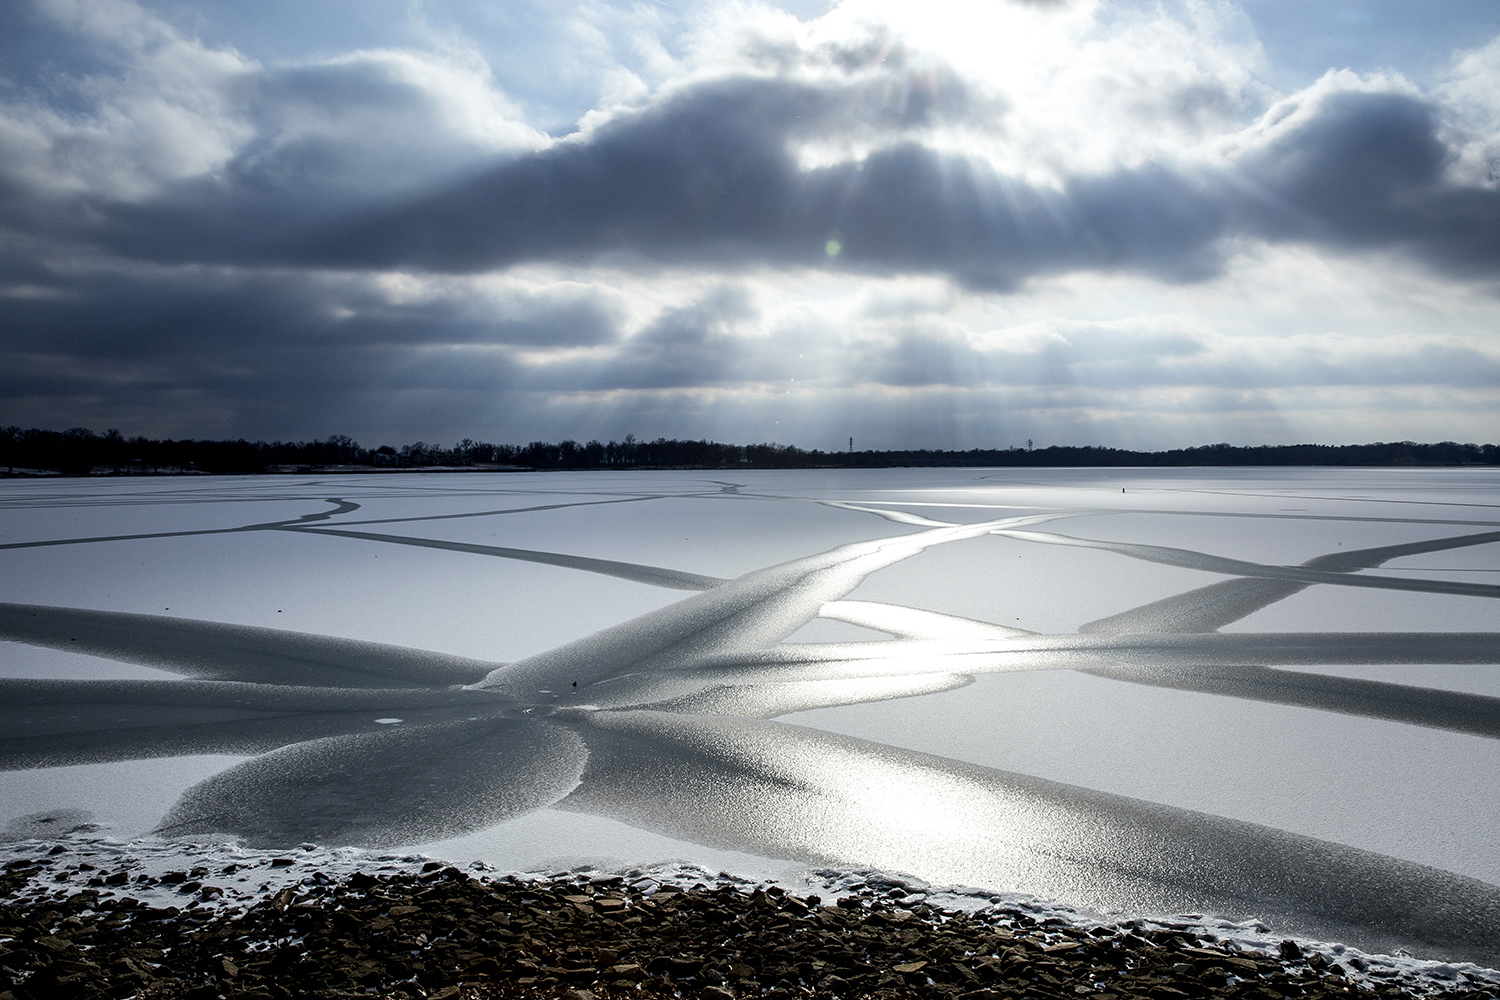 Patterns in the ice stretch across Lake Springfield toward the late afternoon sun in a view off East Lake Shore Drive Wednesday, Feb. 7, 2018. [Rich Saal/The State Journal-Register]